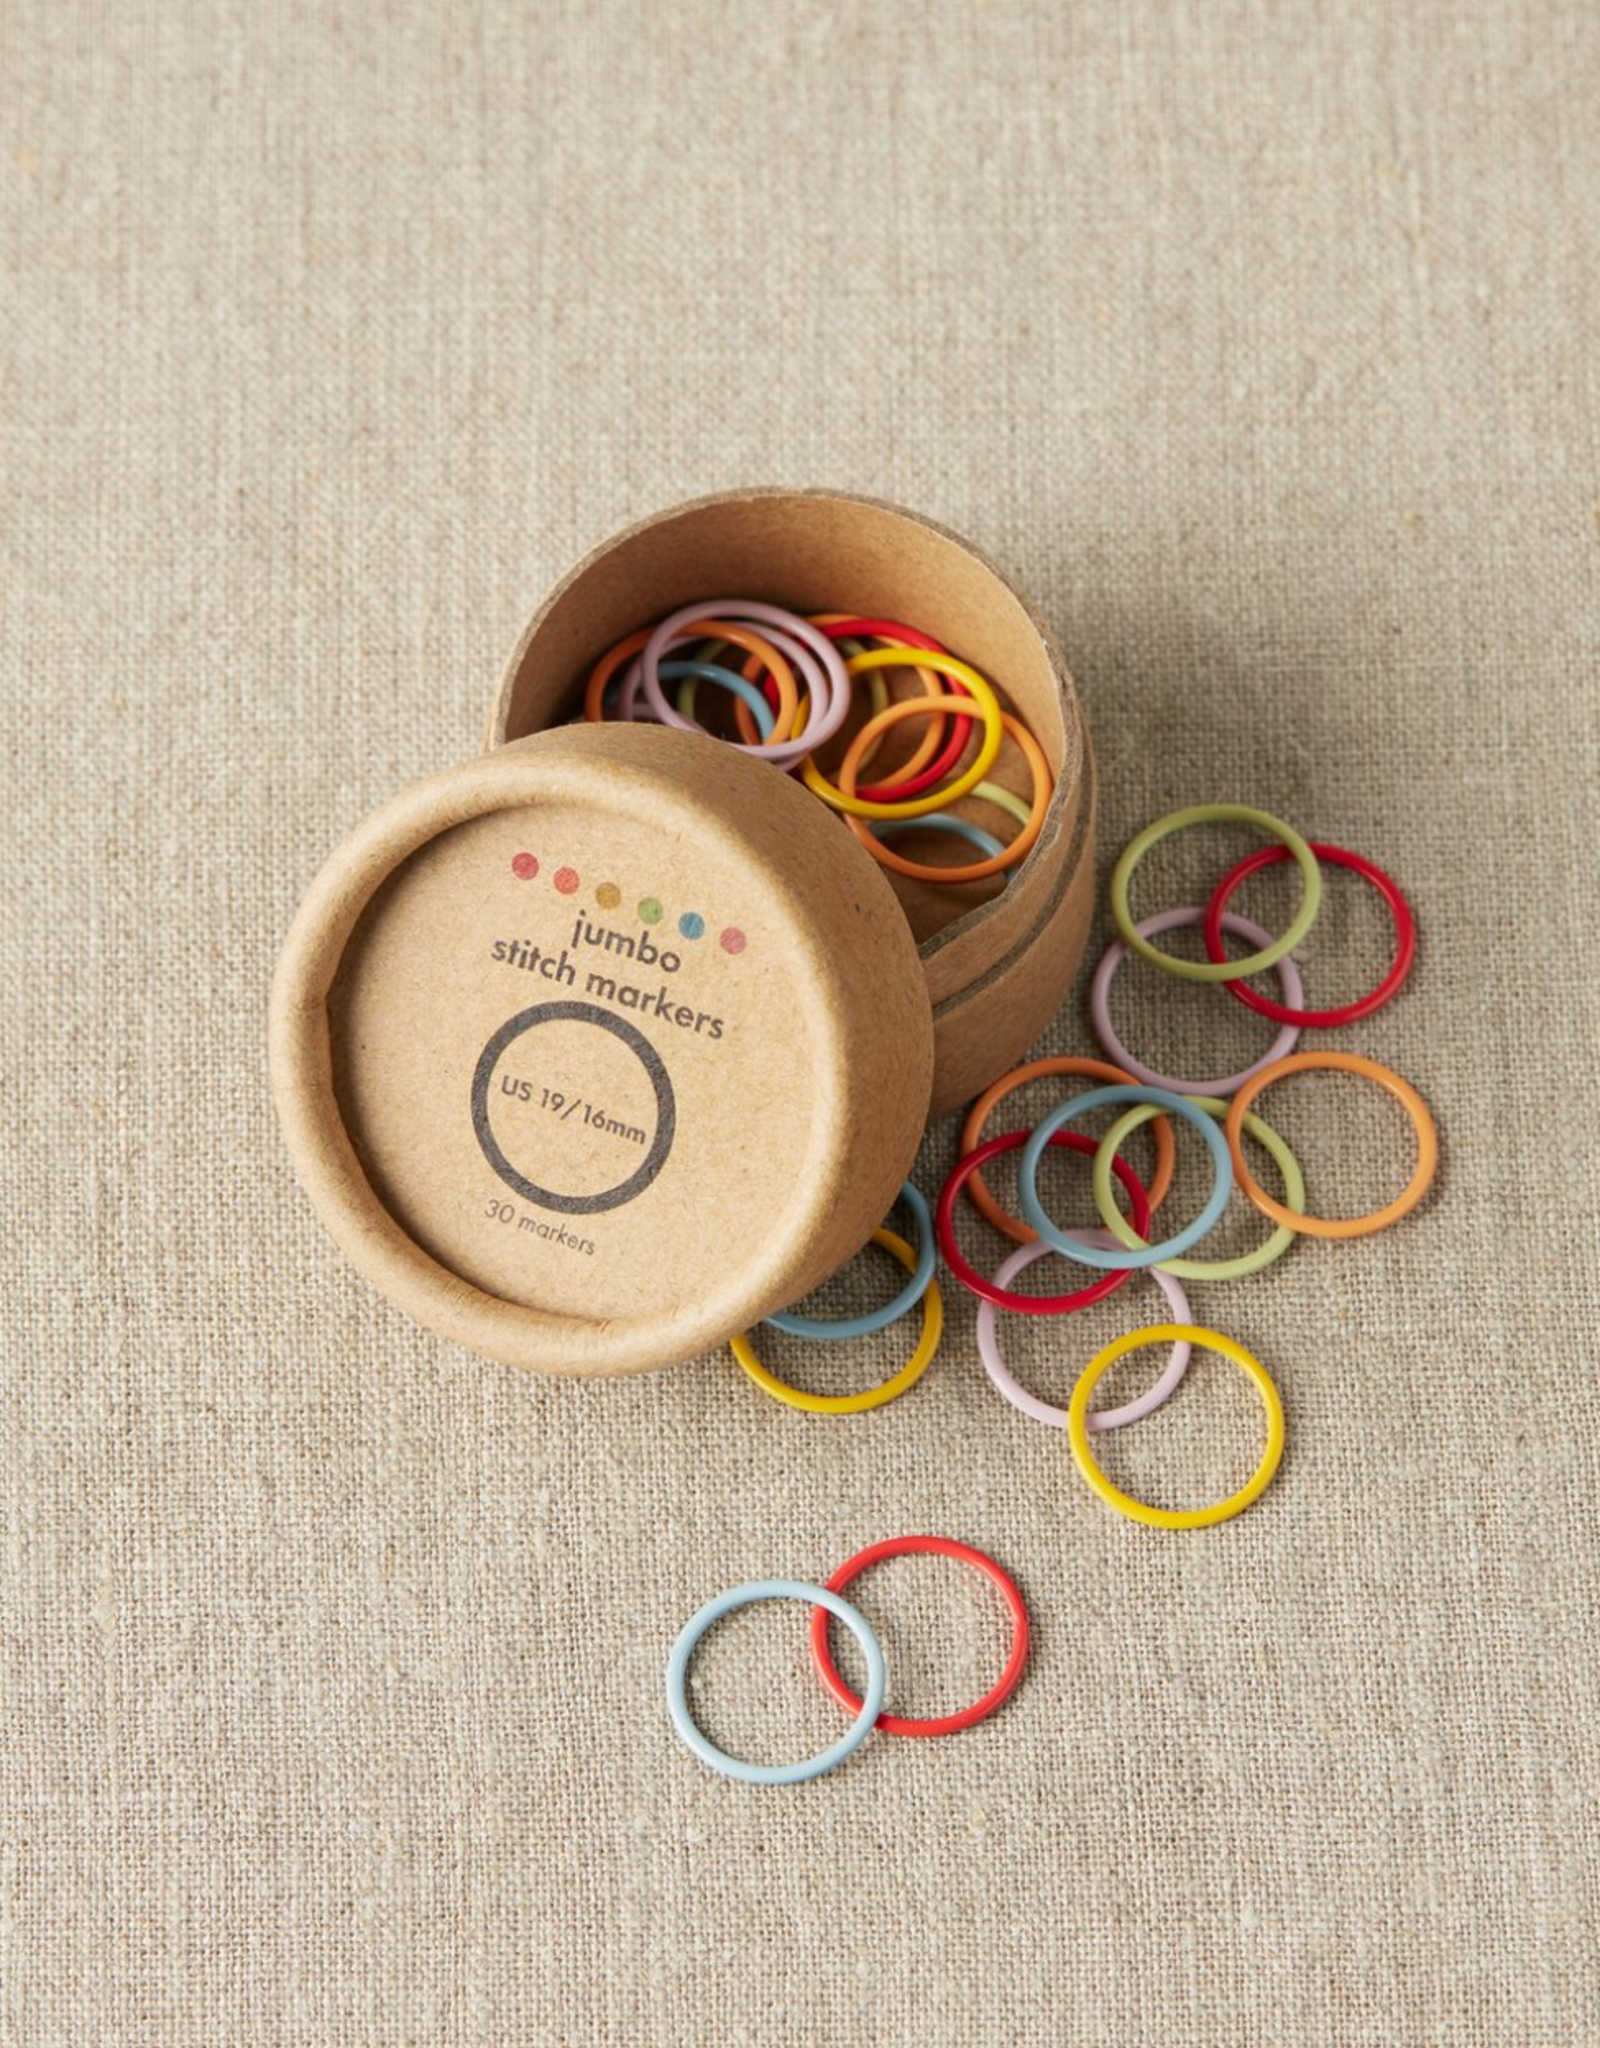 Cocoknits Cocoknits Colorful Ring Stitch Markers Jumbo